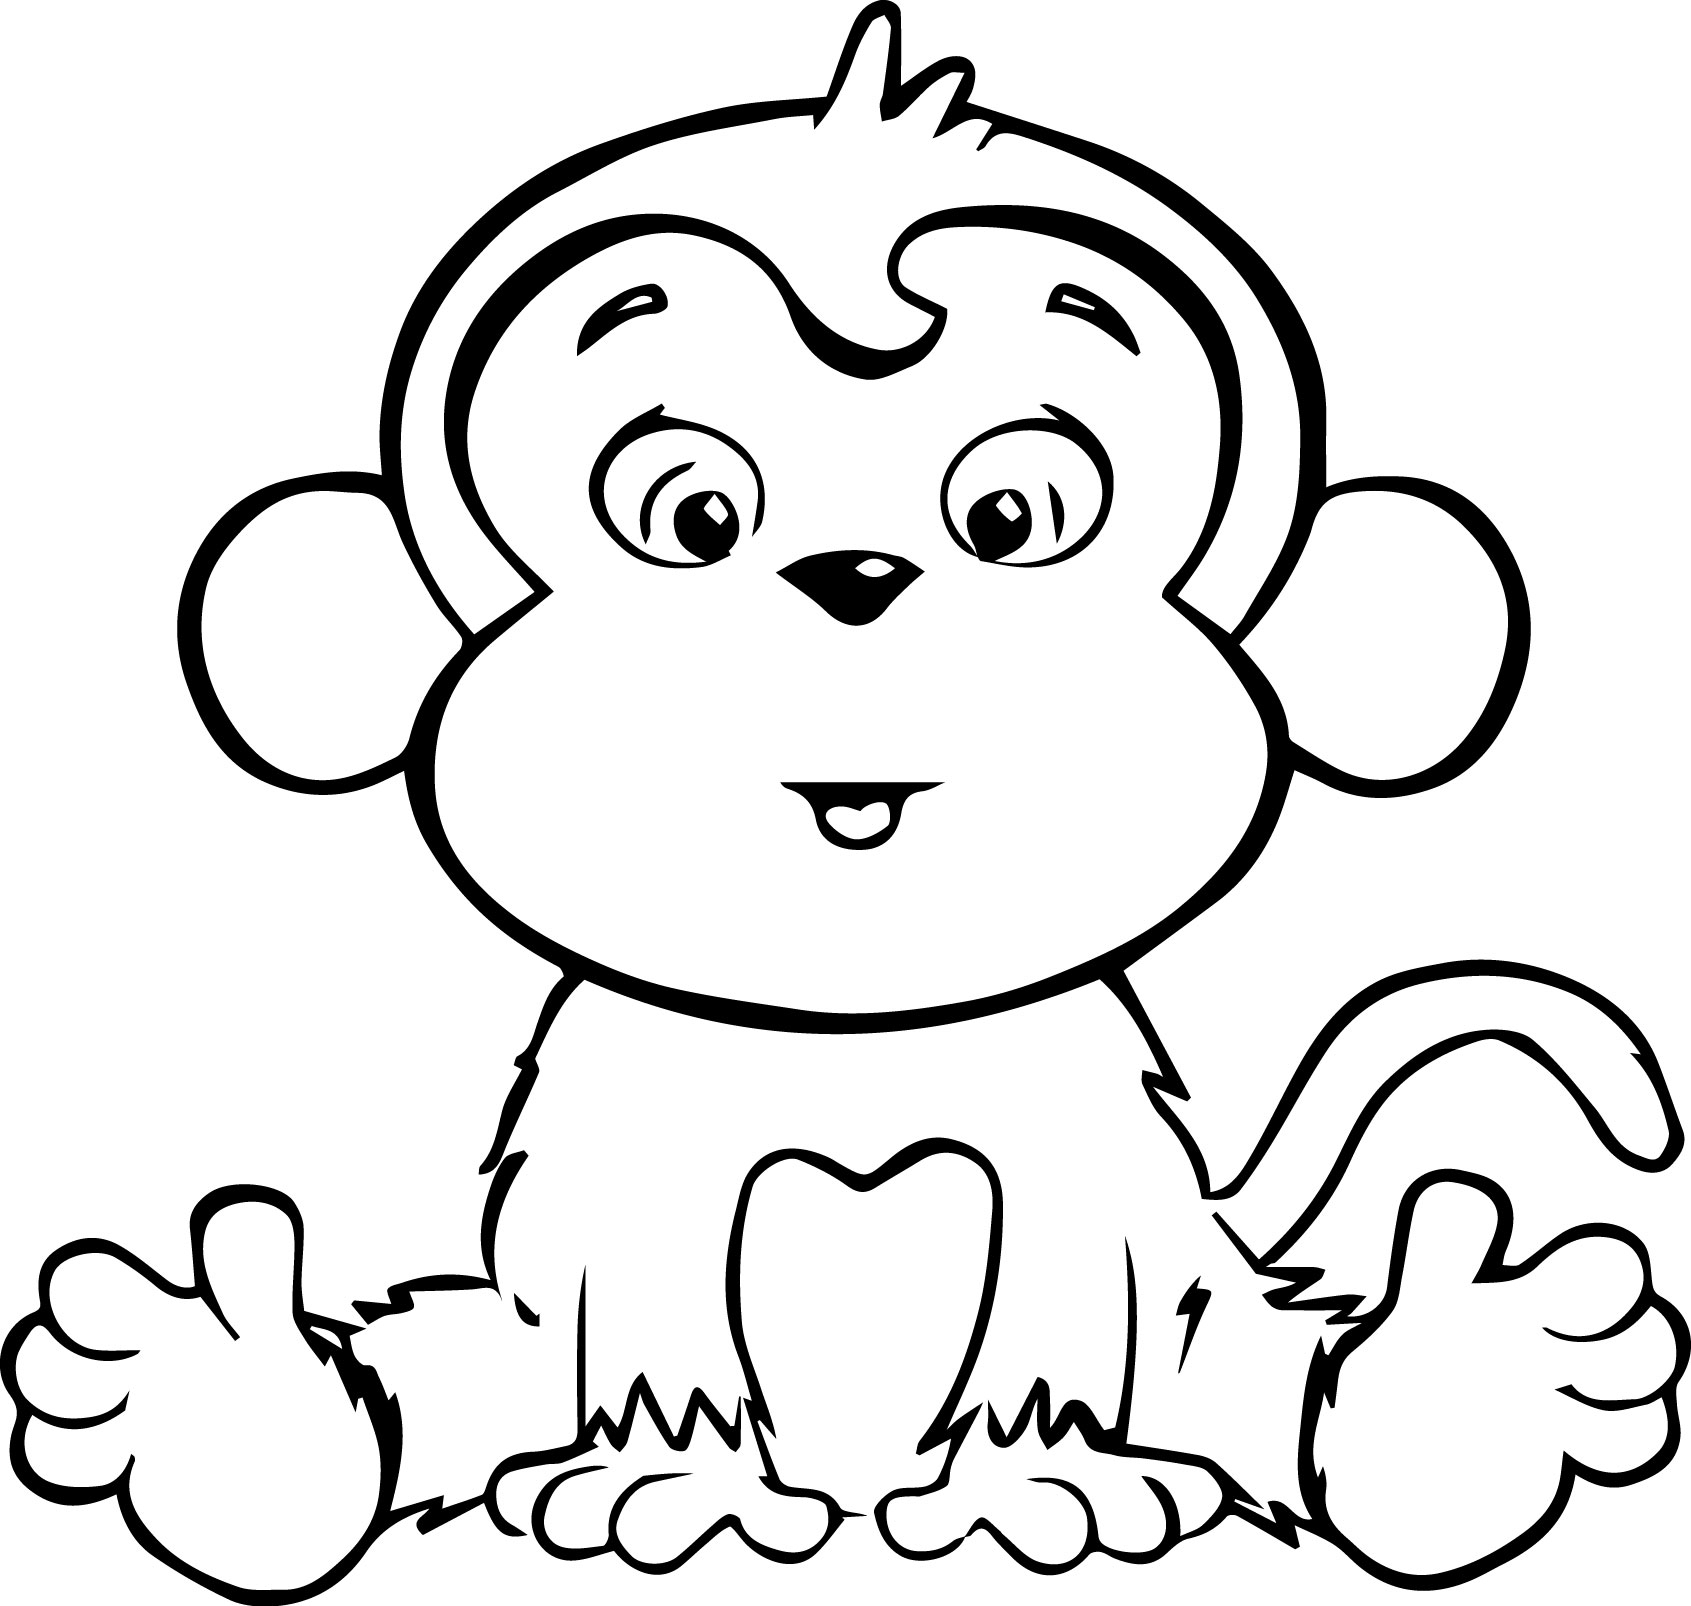 1691x1606 Baby Monkey Drawing Cartoon Baby Monkey Coloring Pages